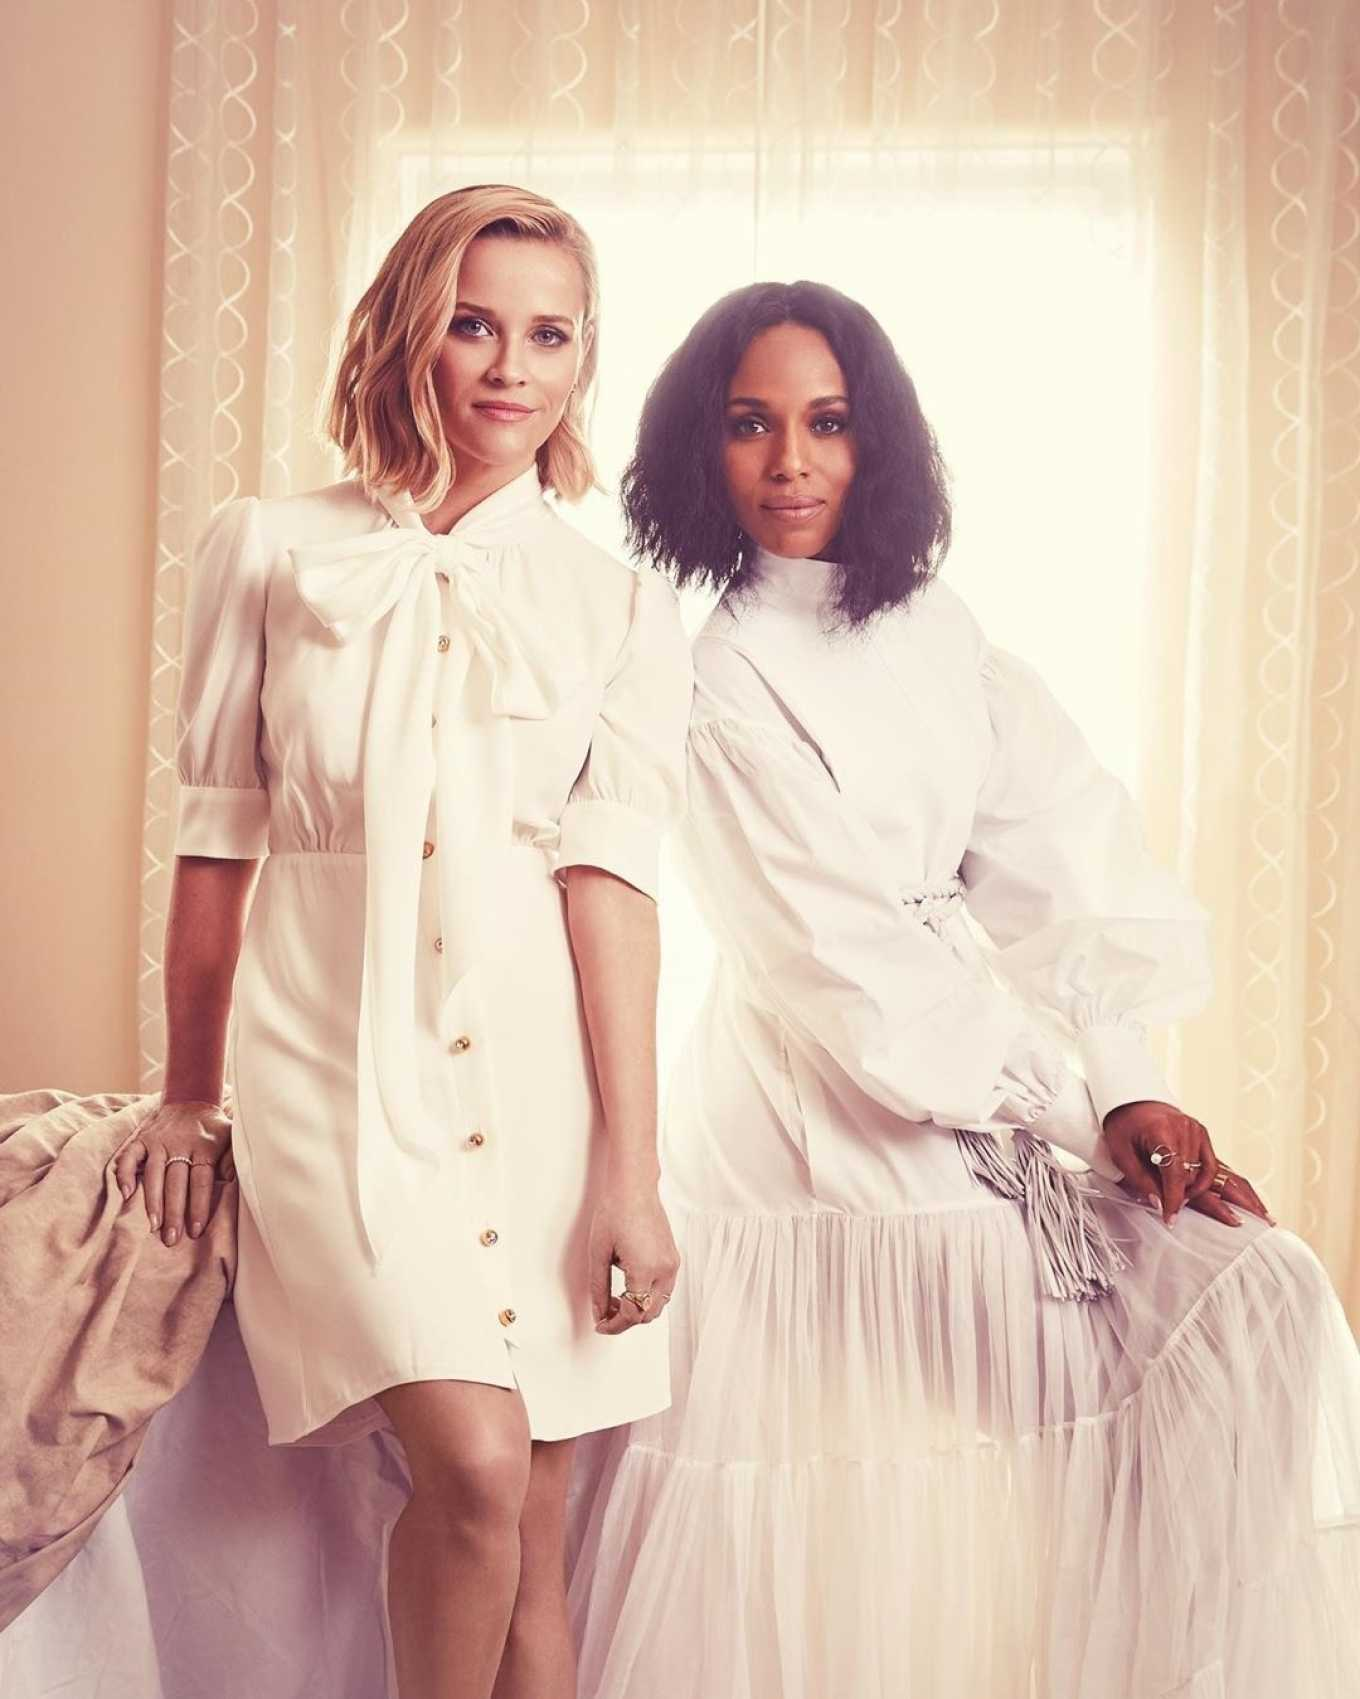 Reese Witherspoon 2020 : Reese Witherspoon and Kerry Washington – Emmy Magazine 2020-03